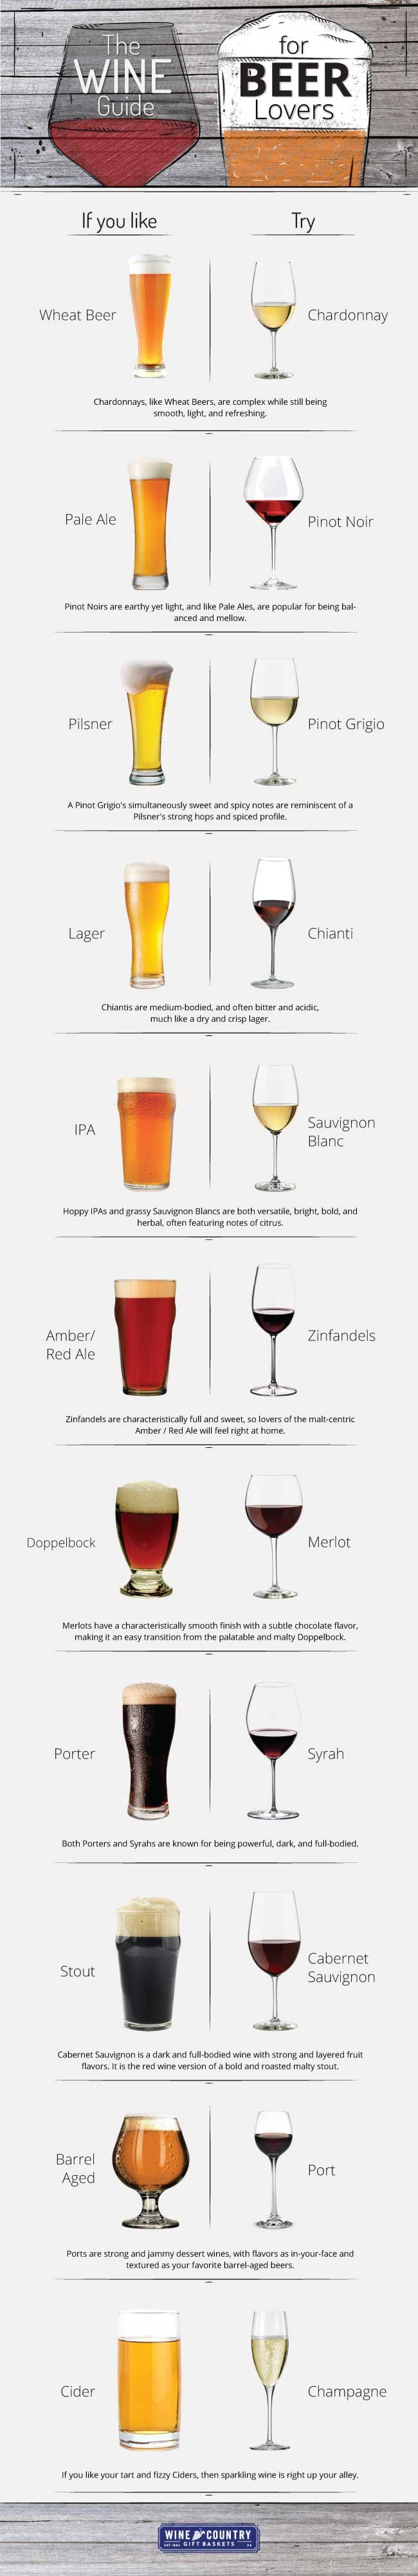 If you are a beer lover, choosing the right wine to enjoy can be a little bit difficult. Here are some suggestions to help you get one that suits your taste!